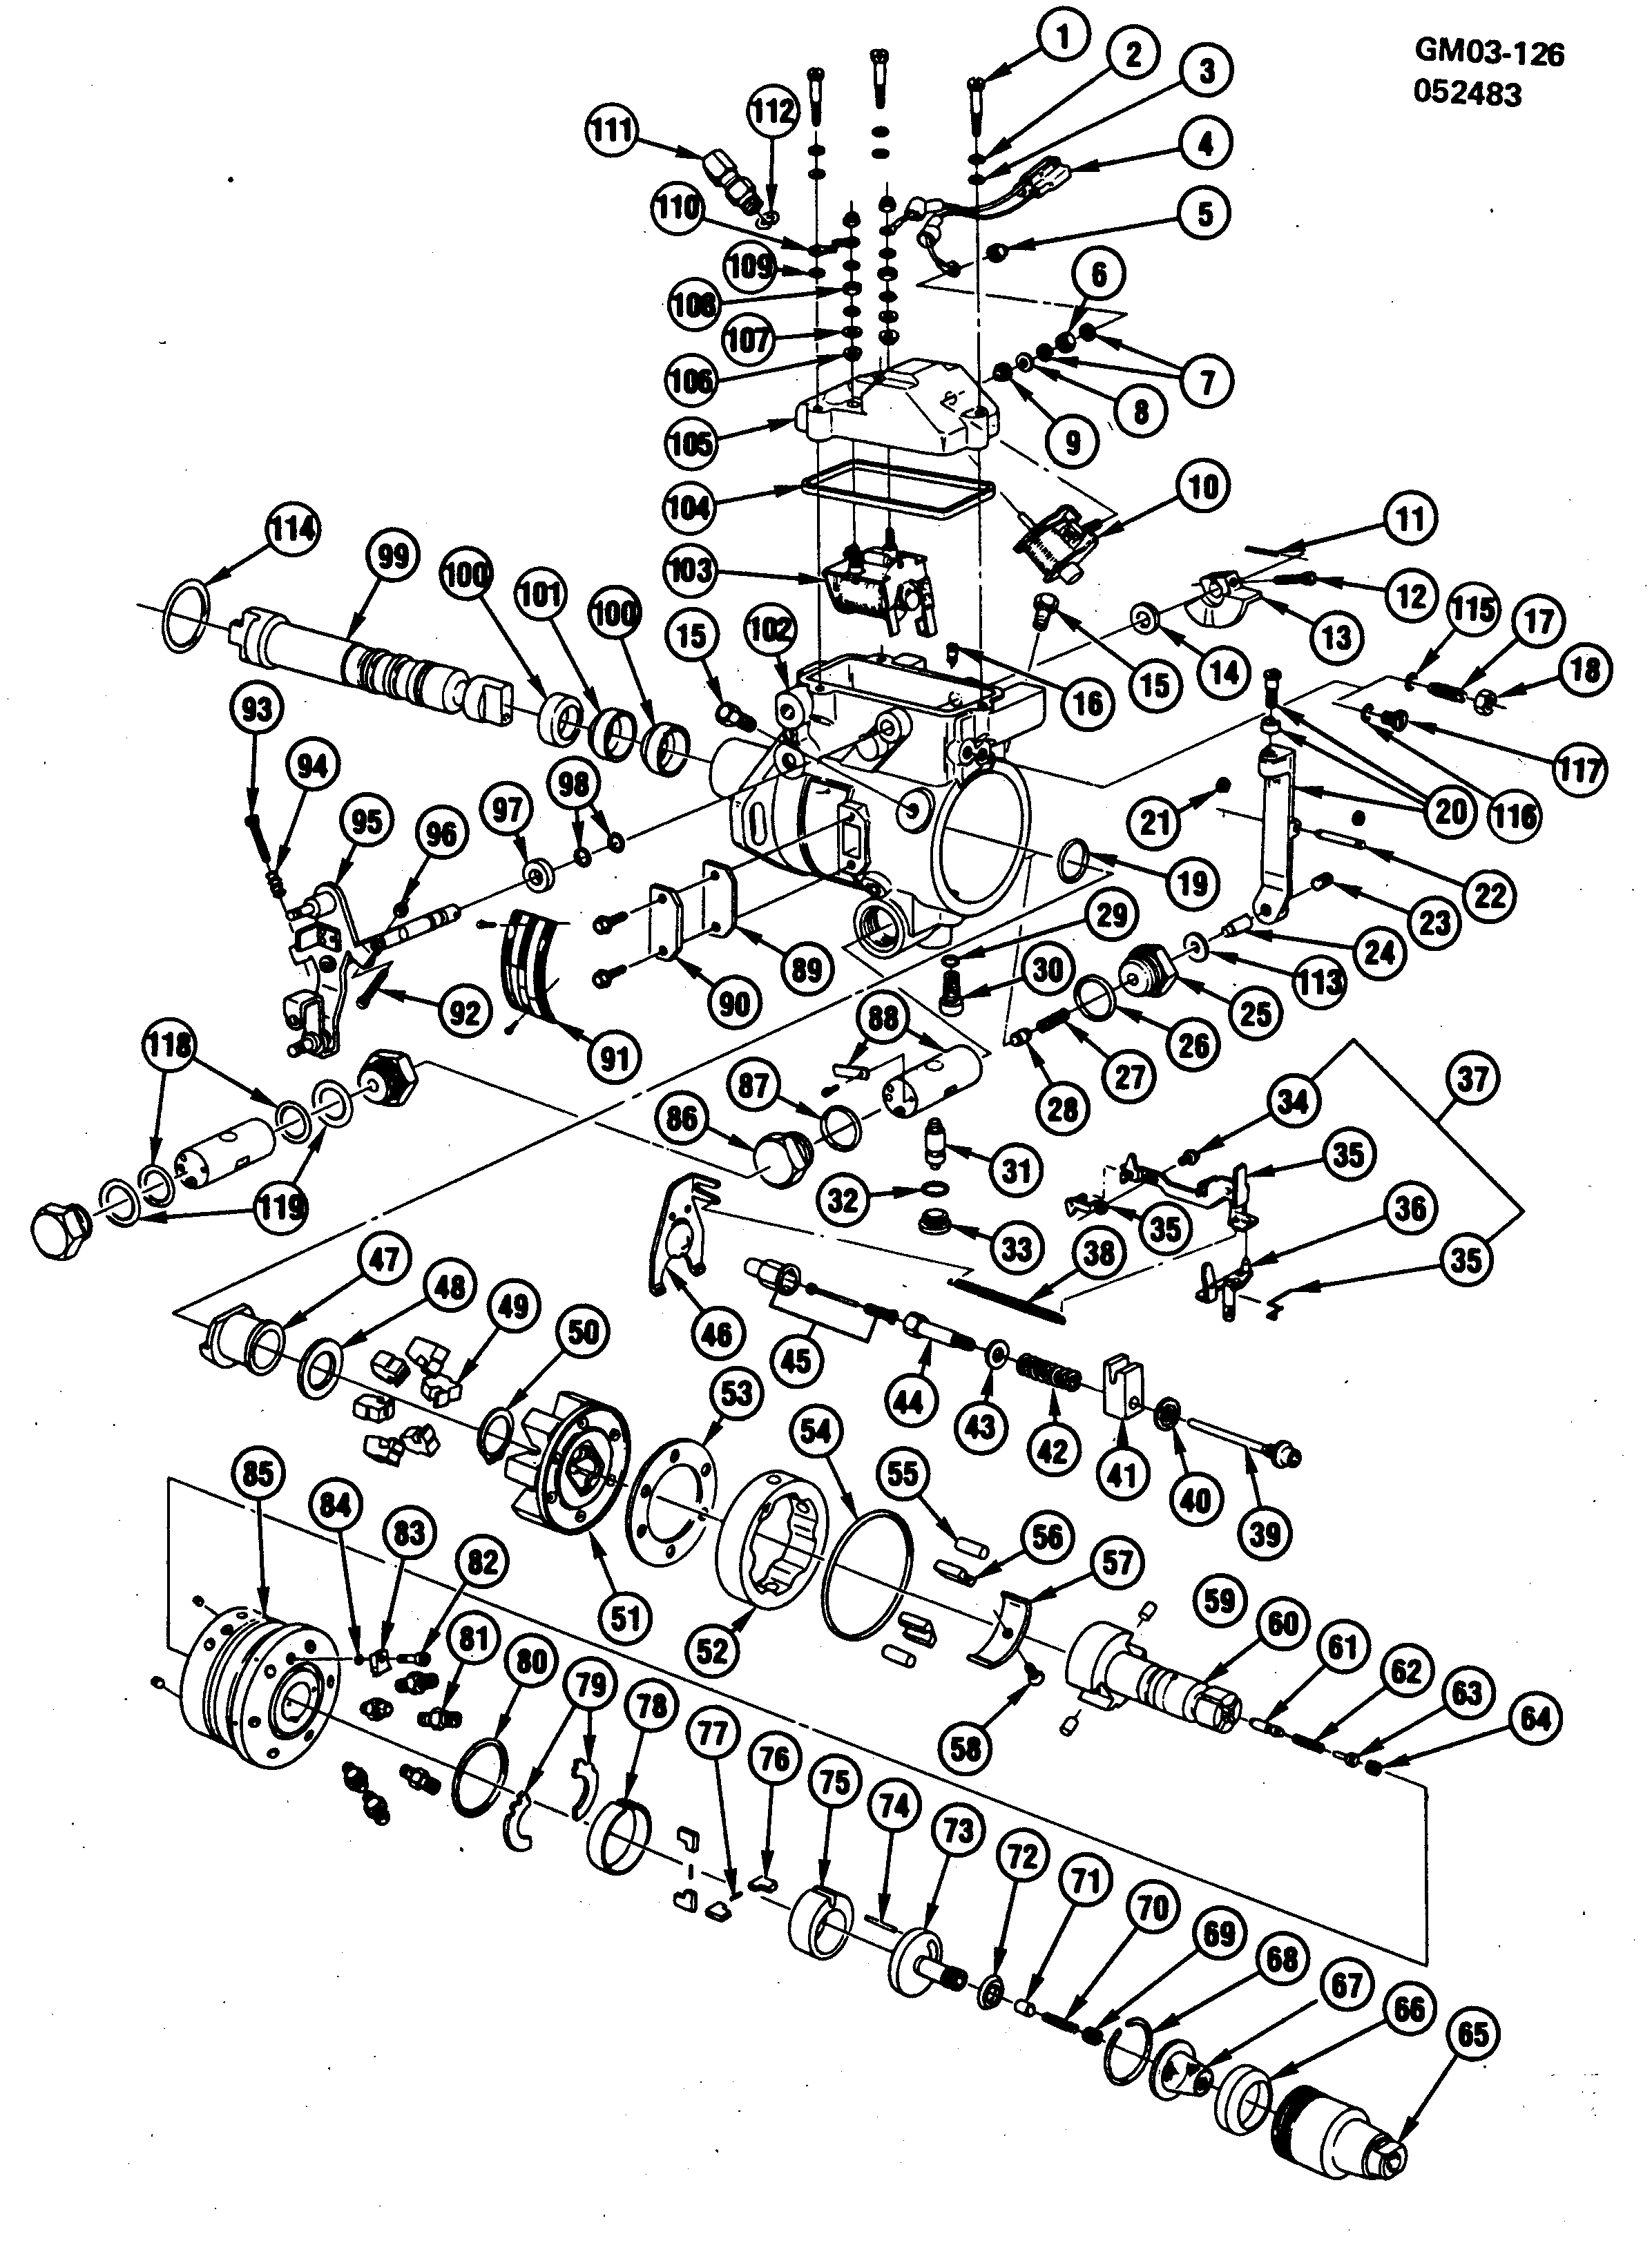 1978-1981 DIESEL INJECTION PUMP-TYPICAL (ROOSA-MASTER/STANADYNE)